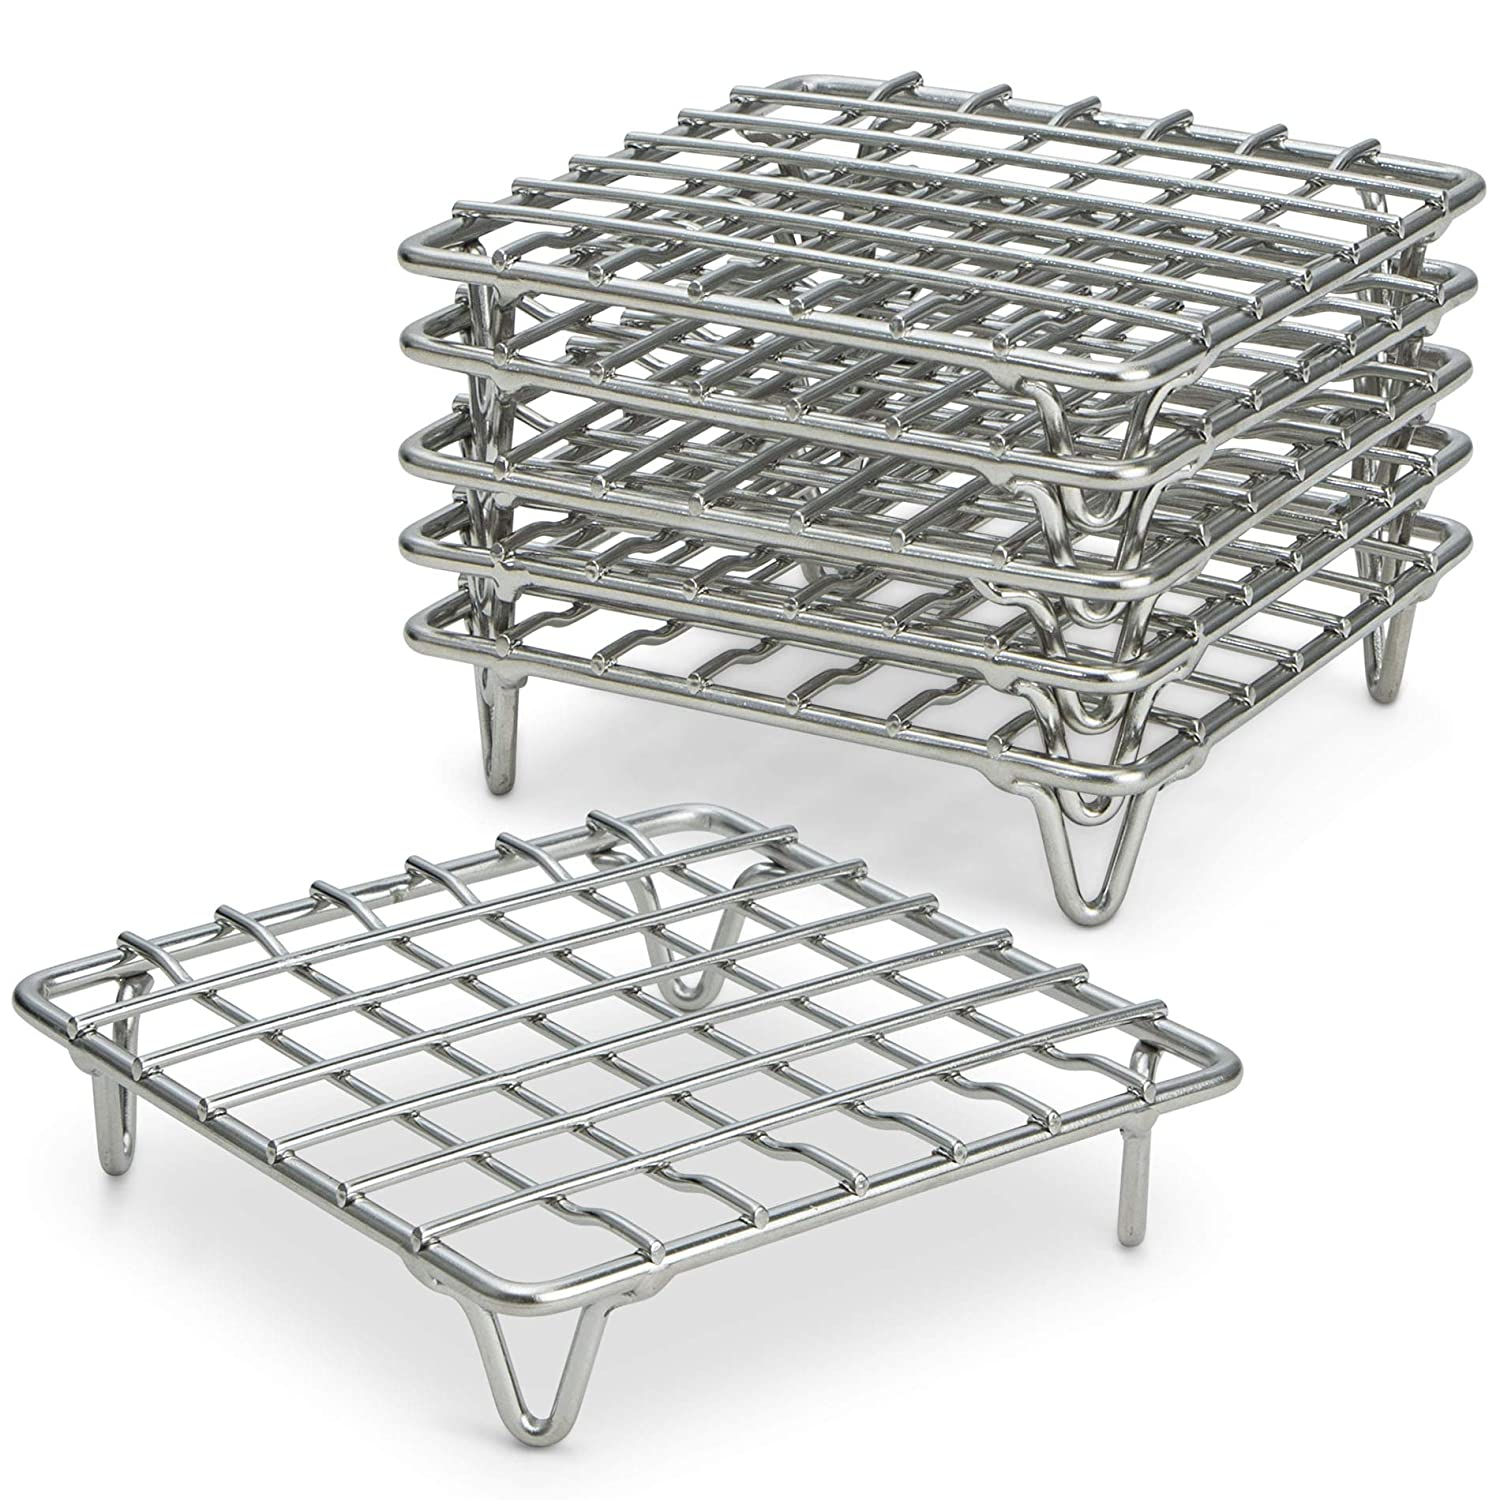 "ARROW & EAVES 4"" Mini Stainless Steel Cooking and Cooling Racks, Set of 6 - Small Metal Trivet Display Stand for Round Pots, Pans, Hot Dishes, Wire Coaster, Kitchen Riser, Steamer, Baking Racks"